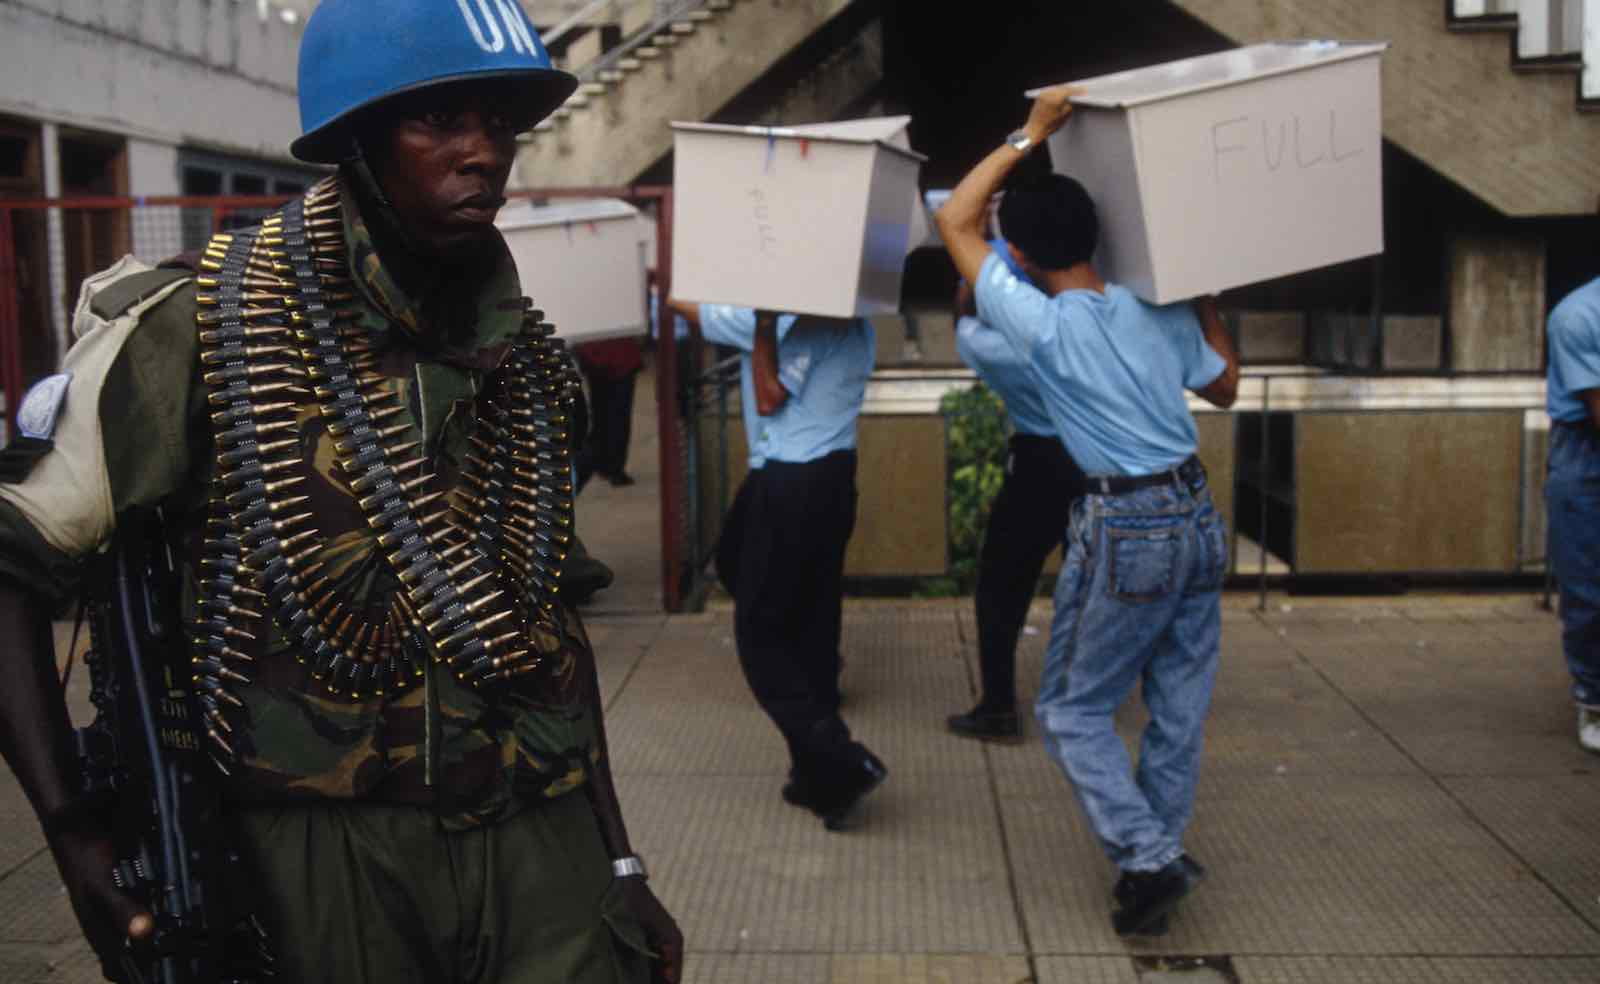 Ballot boxes are collected in Cambodia under UN supervision in 1993 (Photo: Noboru Hashimoto via Getty)